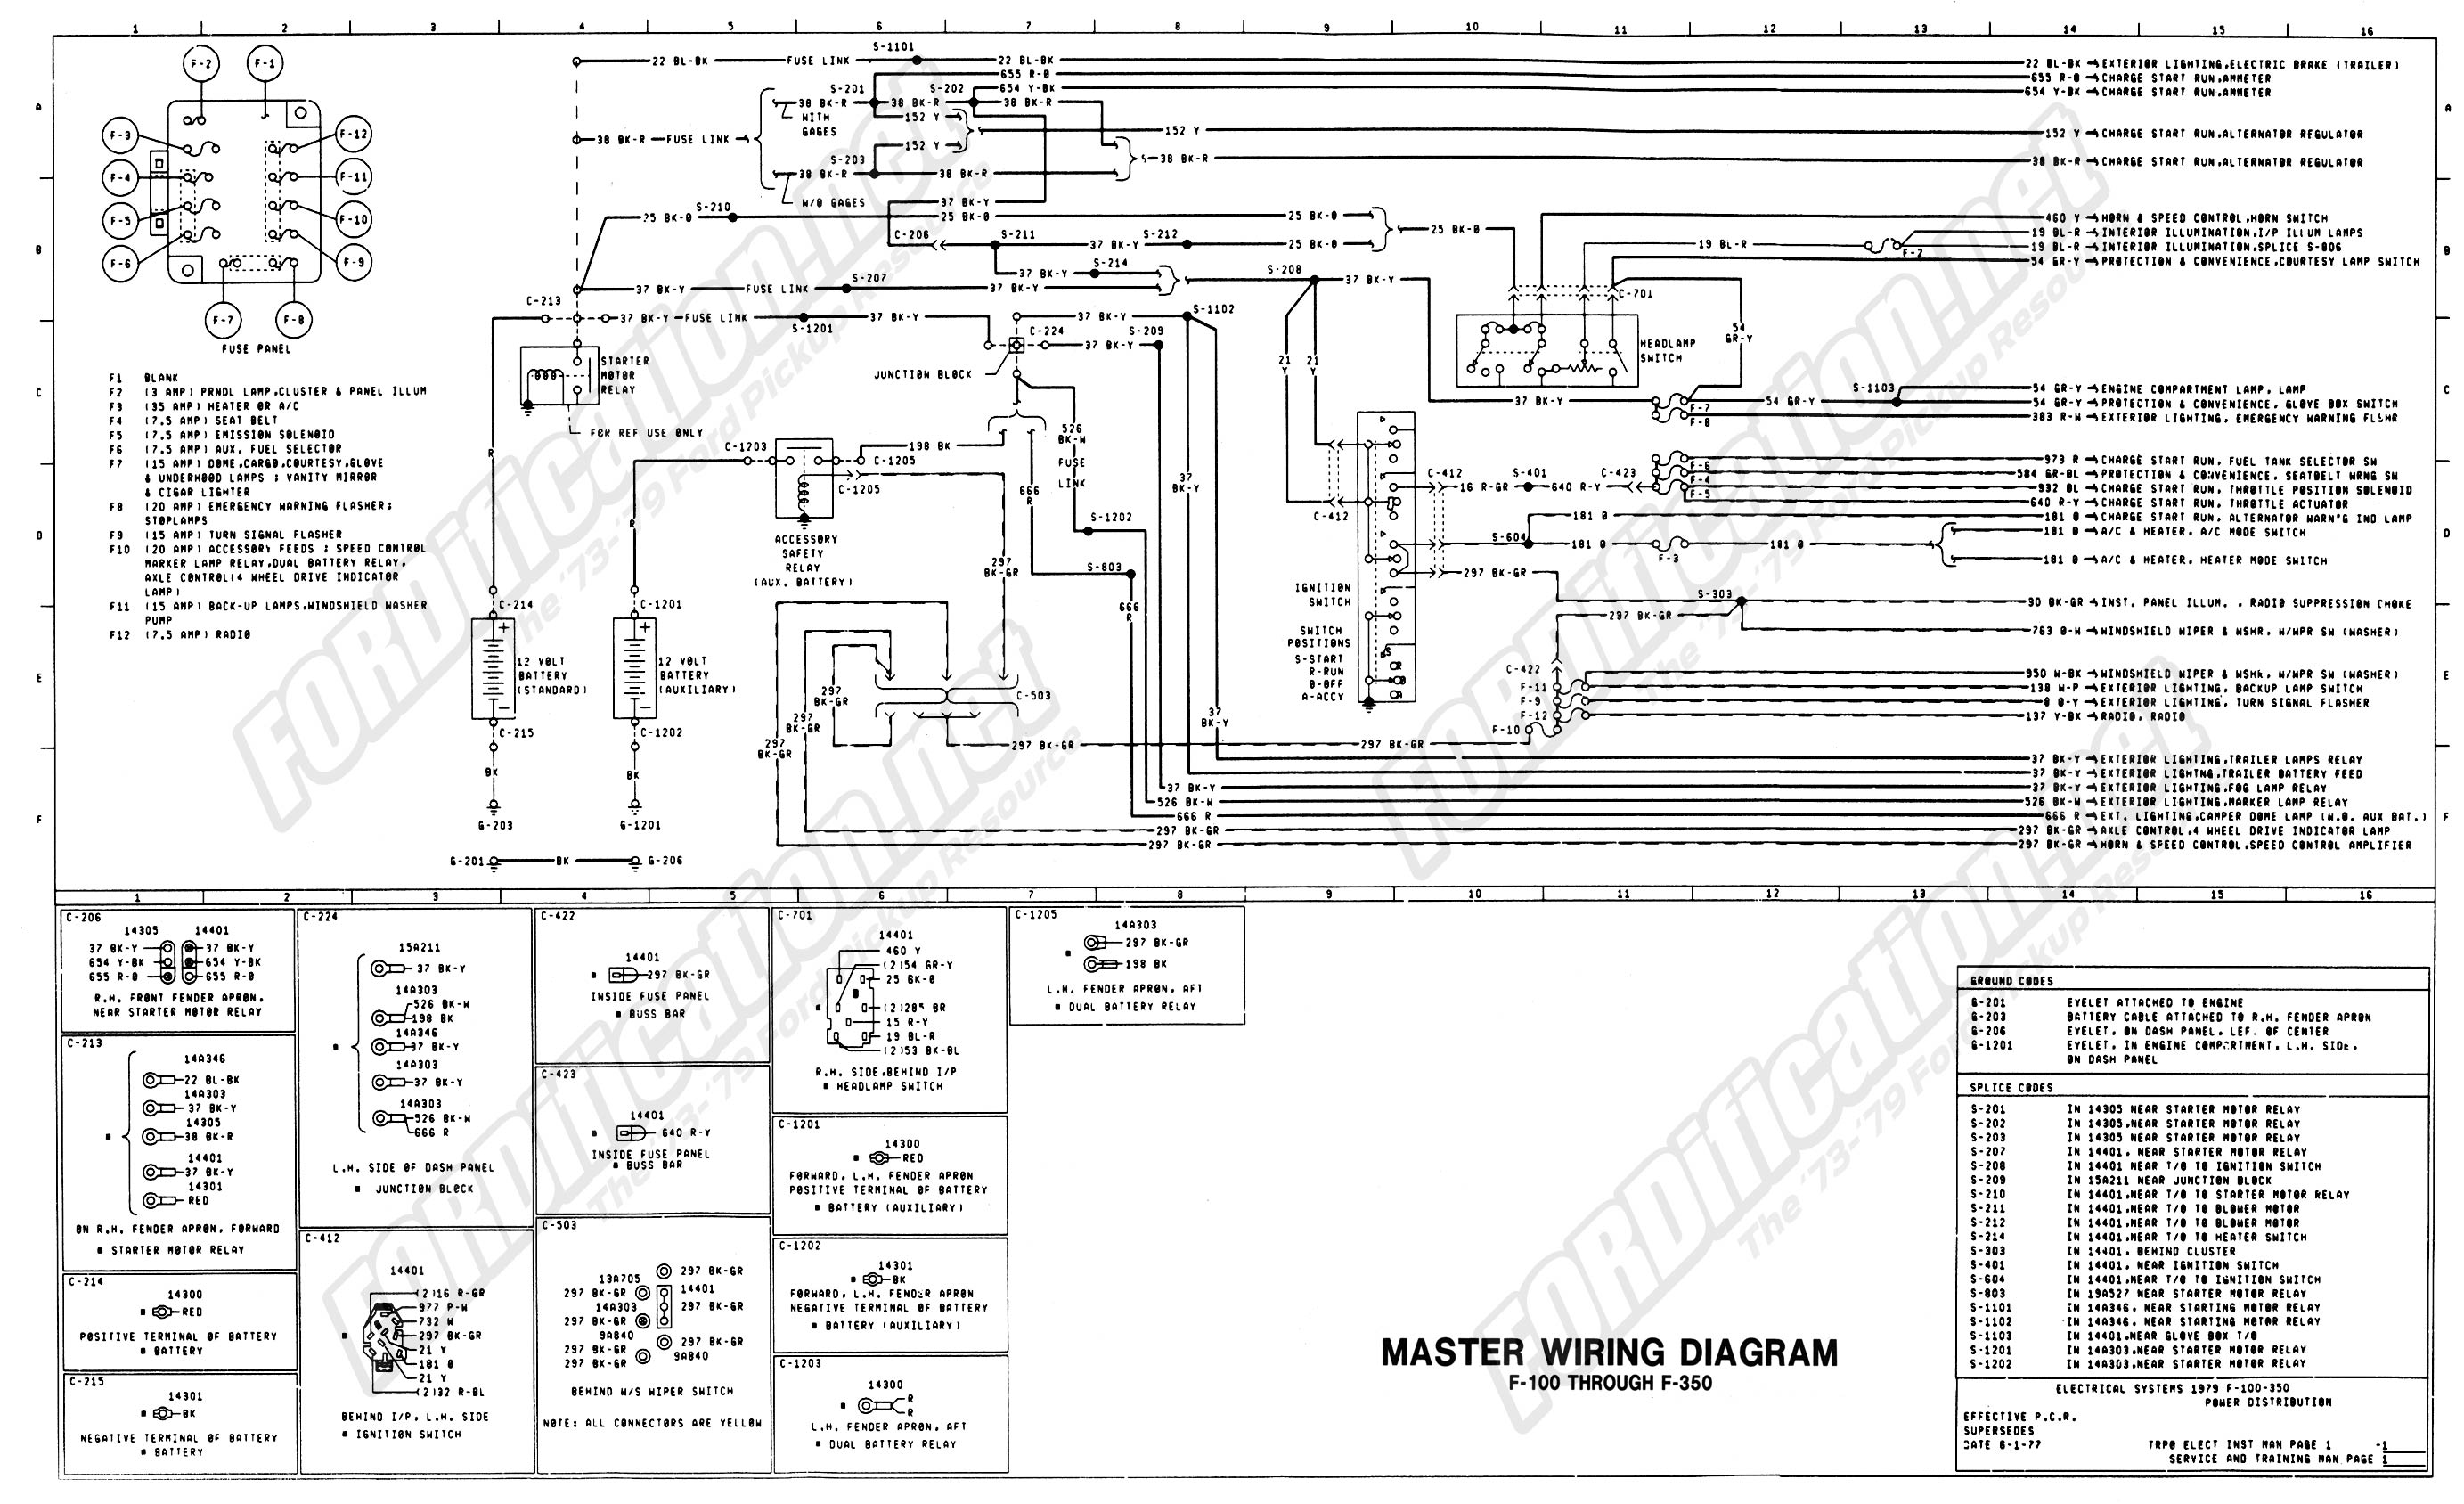 wiring_79master_1of9 1973 1979 ford truck wiring diagrams & schematics fordification net 1979 ford bronco fuse box diagram at arjmand.co